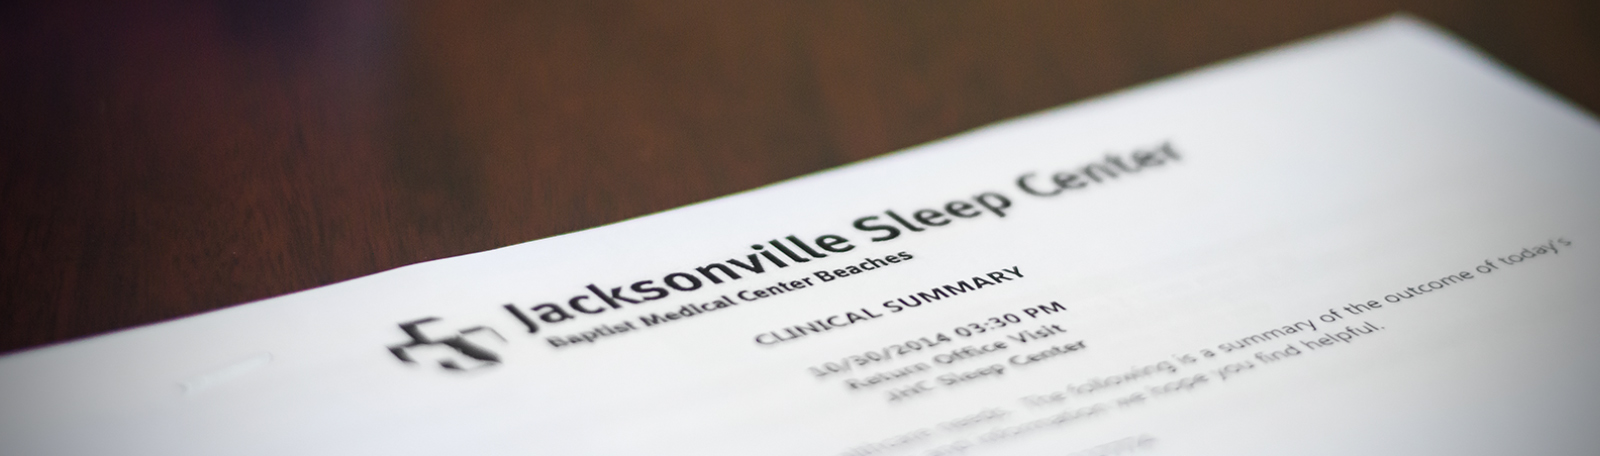 Jacksonville Sleep Center Clinical Summary